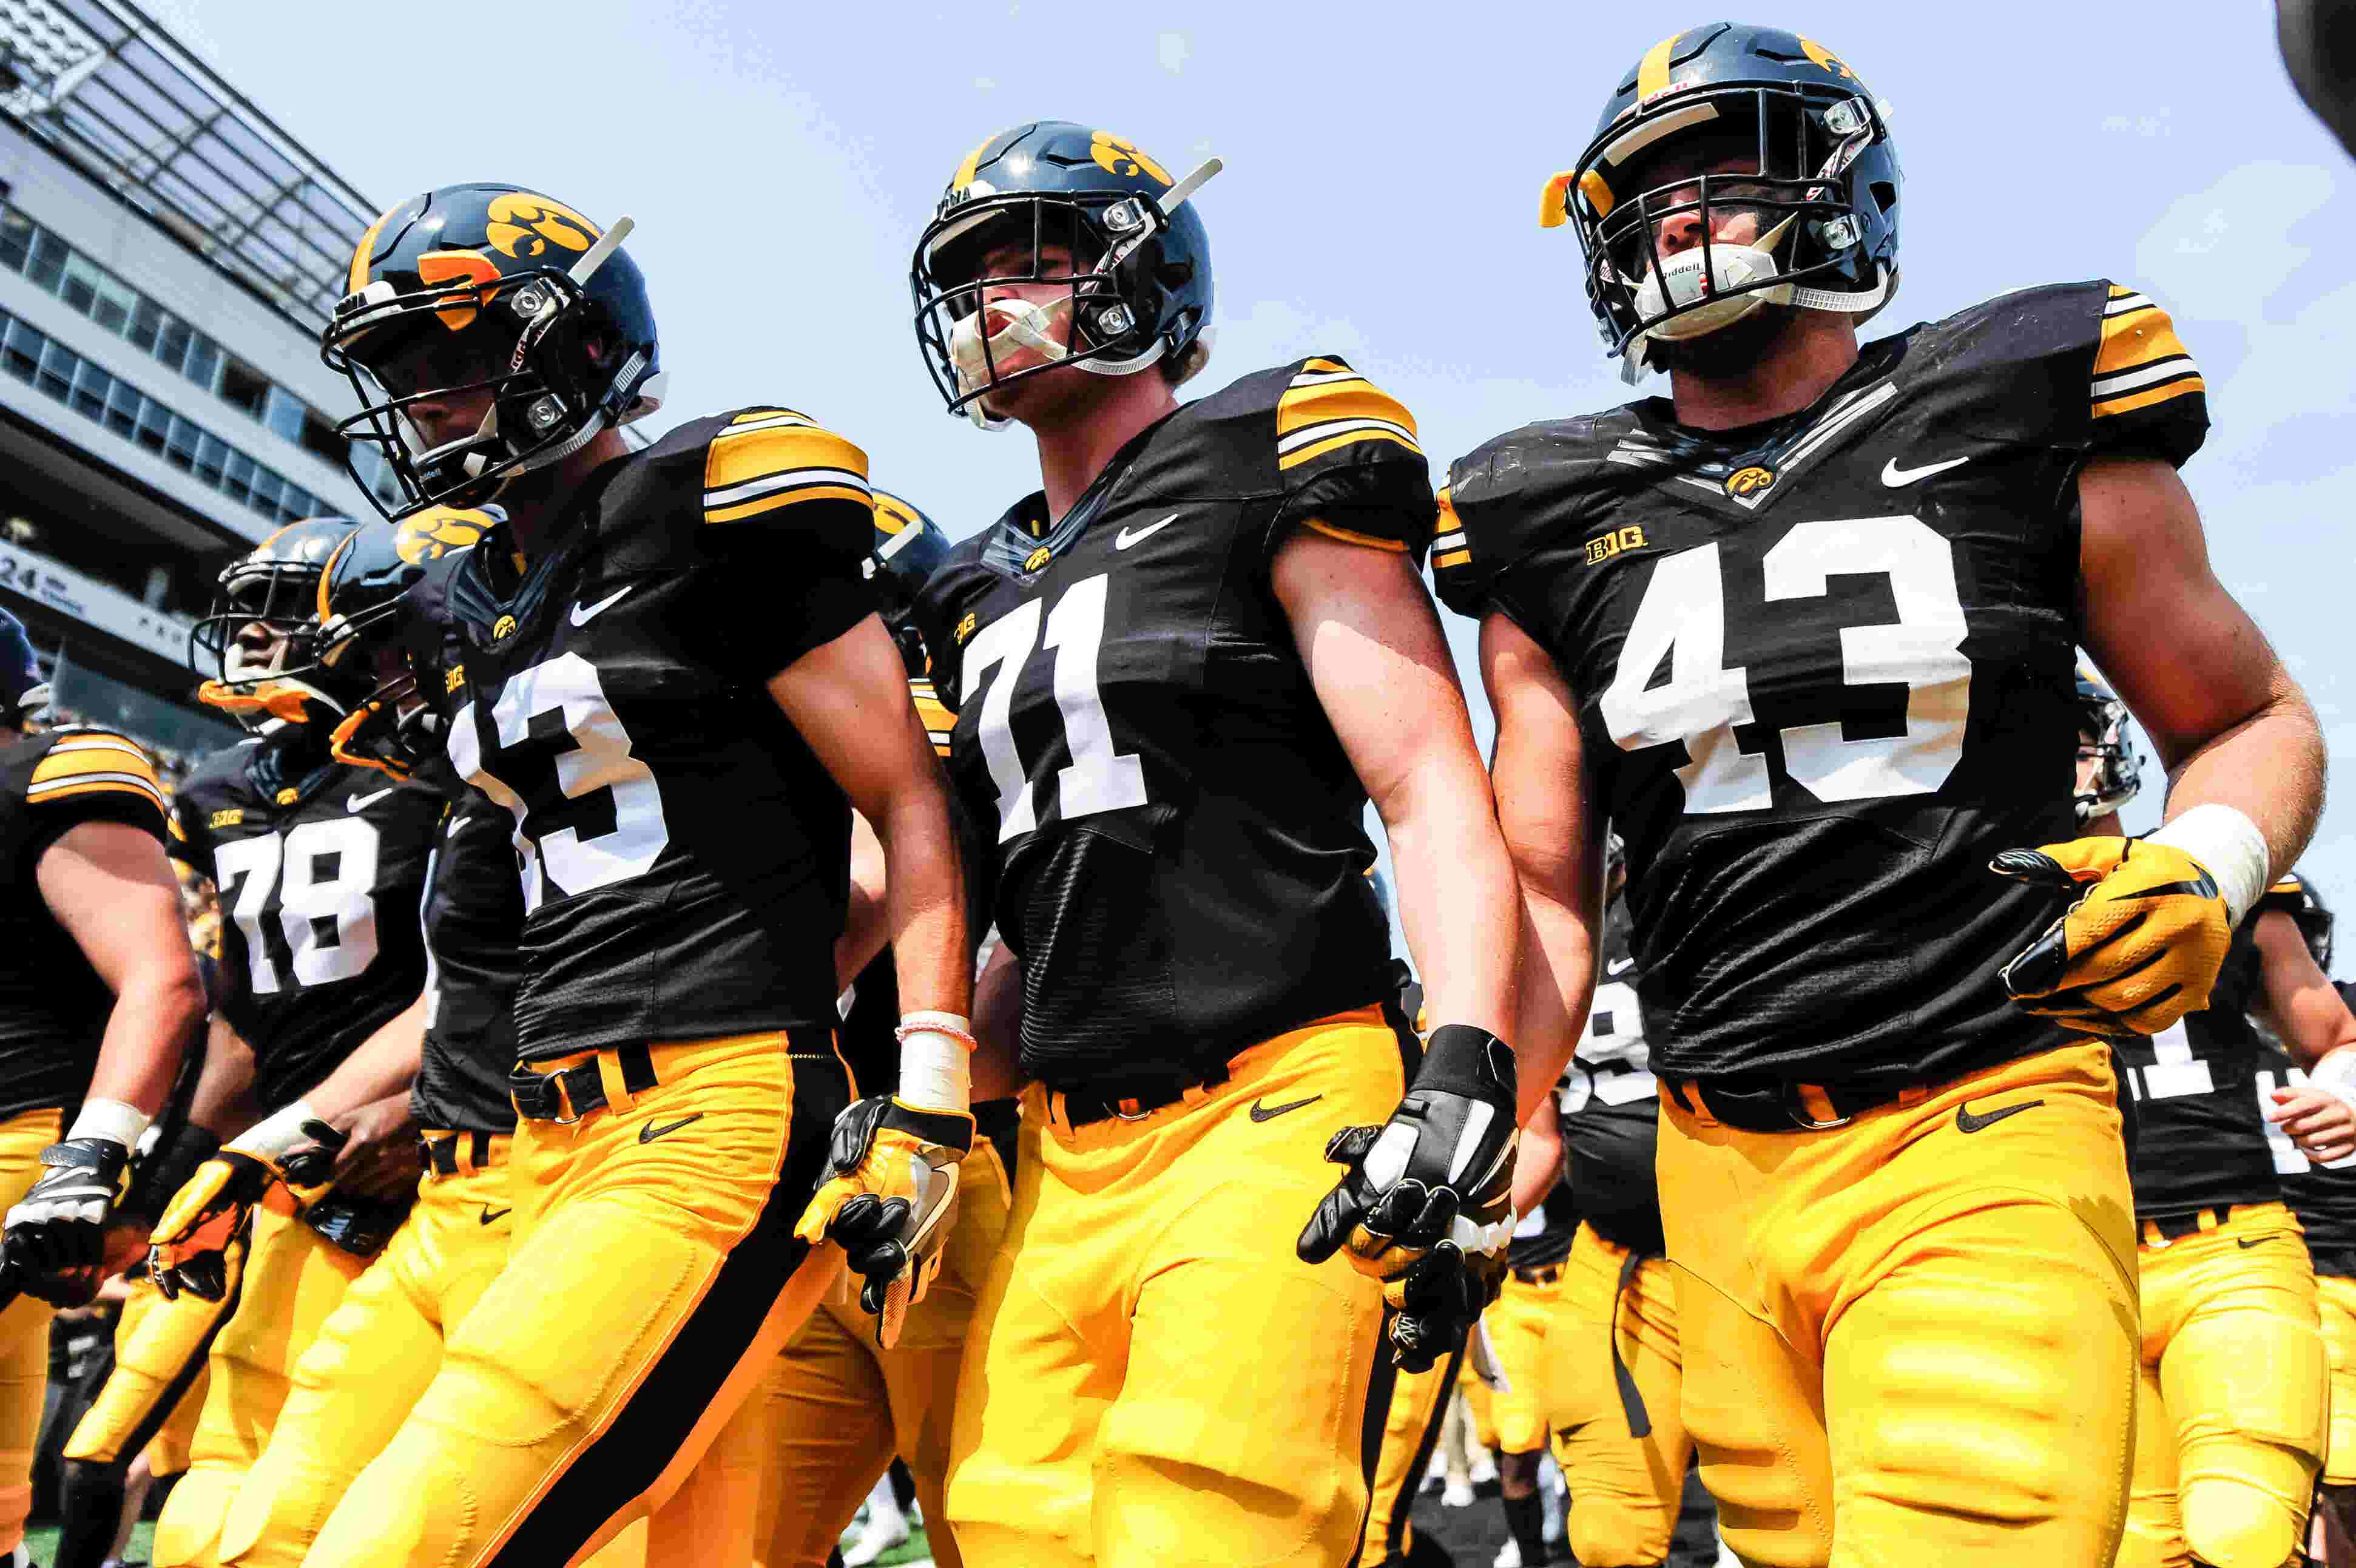 Watch: Hawkeyes football team emerges from Kinnick Stadium tunnel